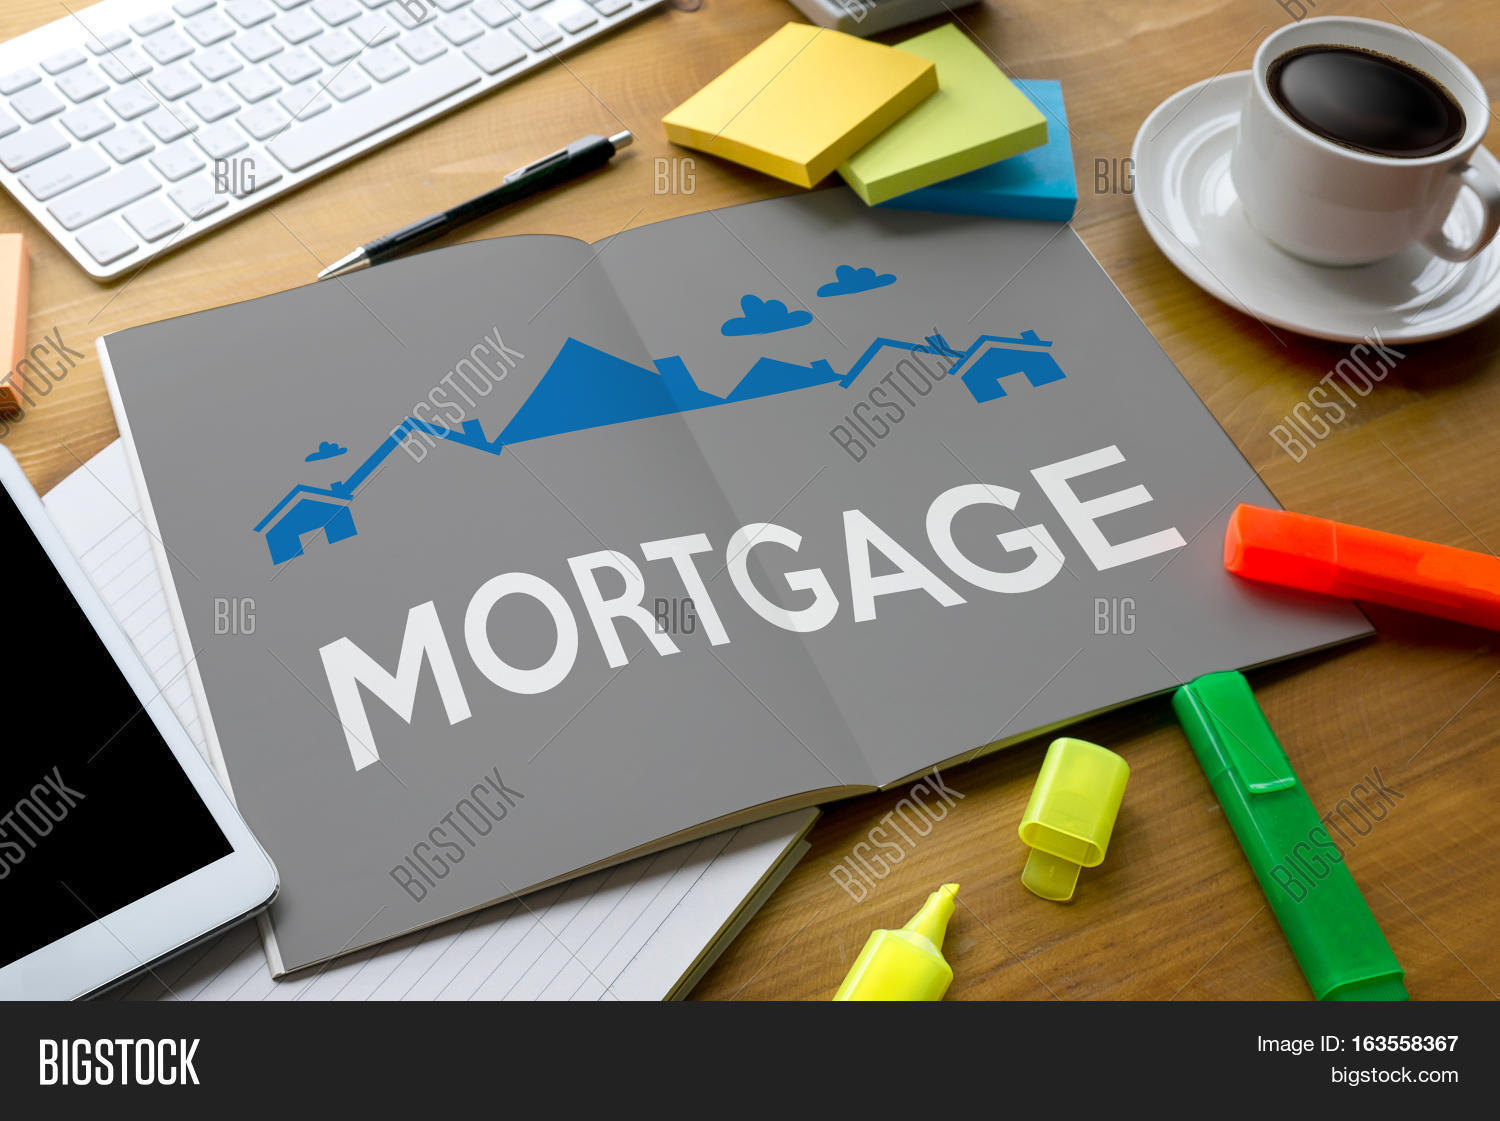 Property investment mortgage image photo bigstock for Mortgage to buy land